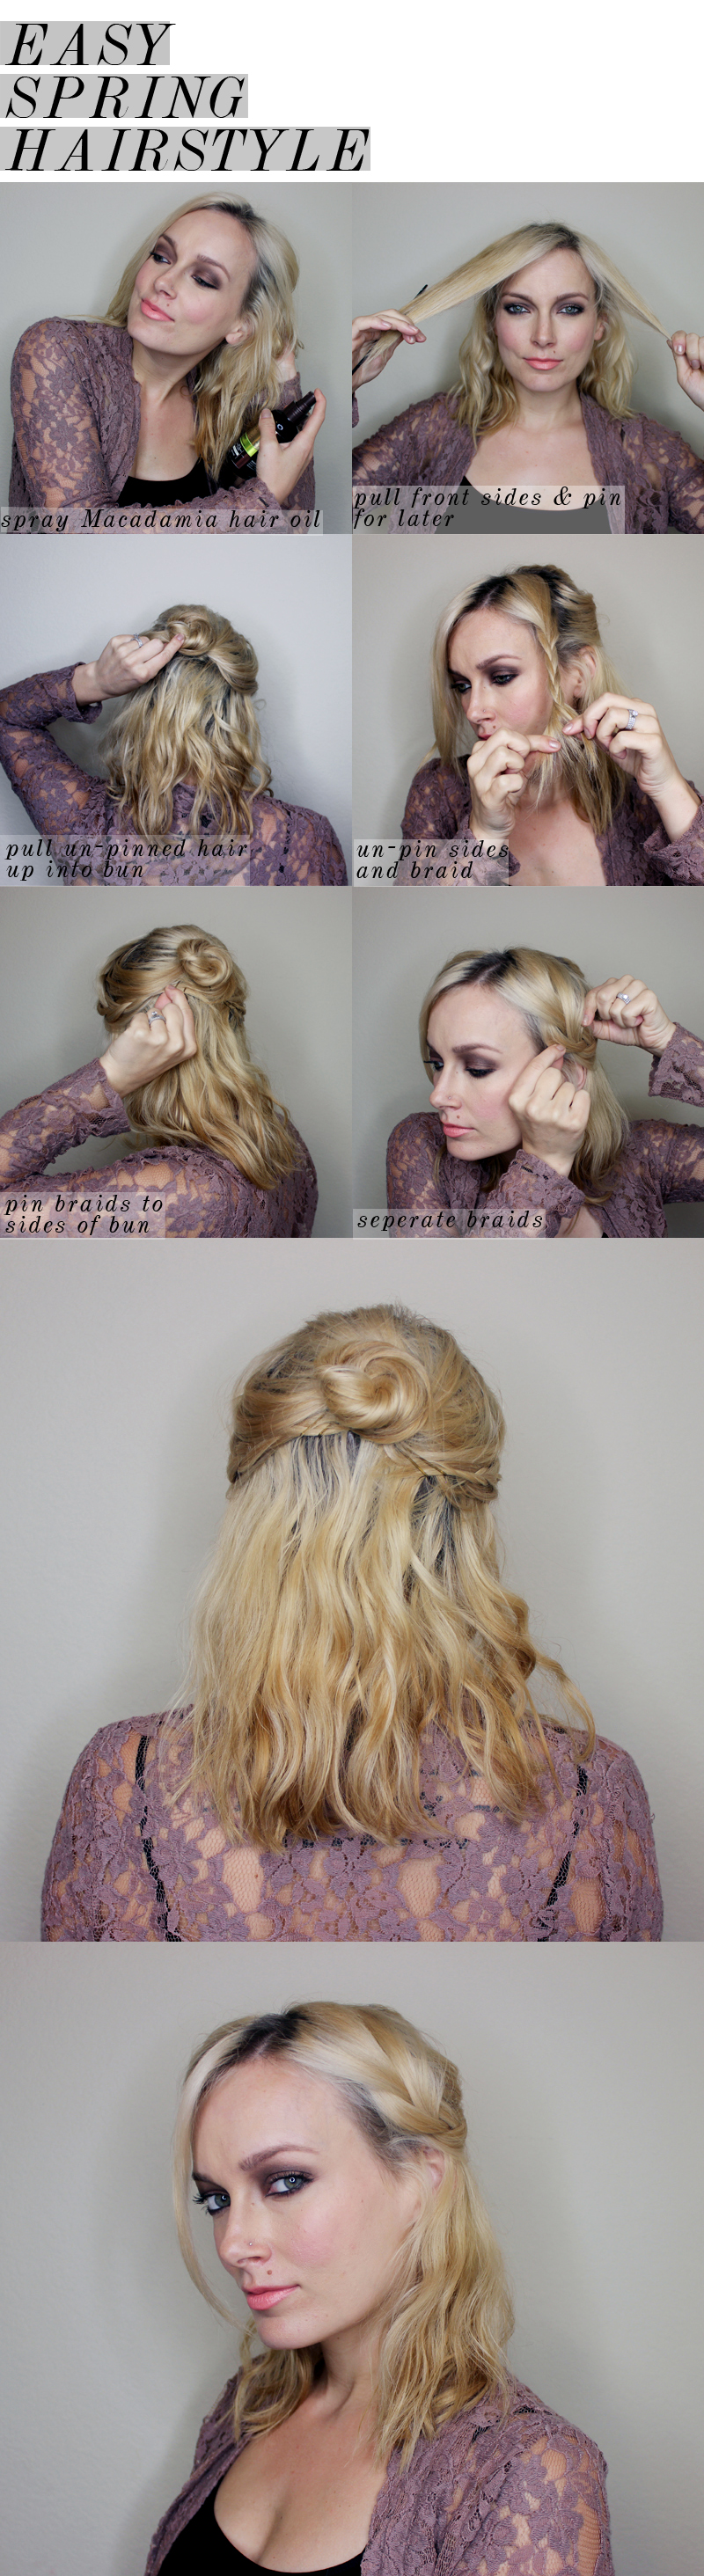 Updo hairstyles for medium length hair tutorials hairstyles easy spring half updo for medium length hair citizens of beauty solutioingenieria Image collections